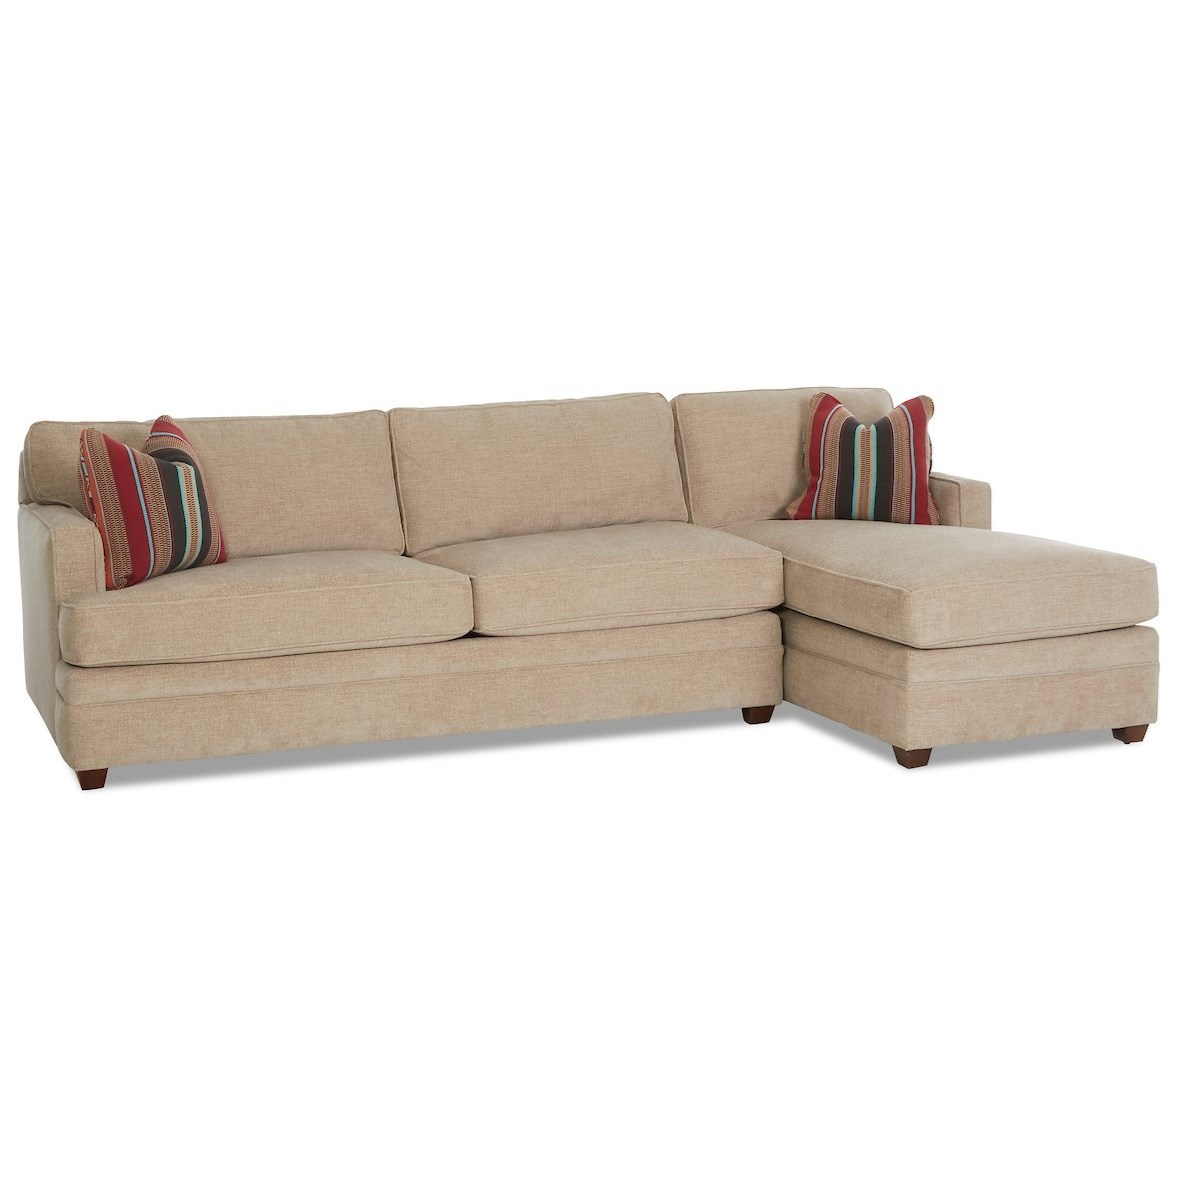 Living Your Way 2-Piece Sectional w/ LAF Dreamquest Sleeper by Klaussner at Johnny Janosik